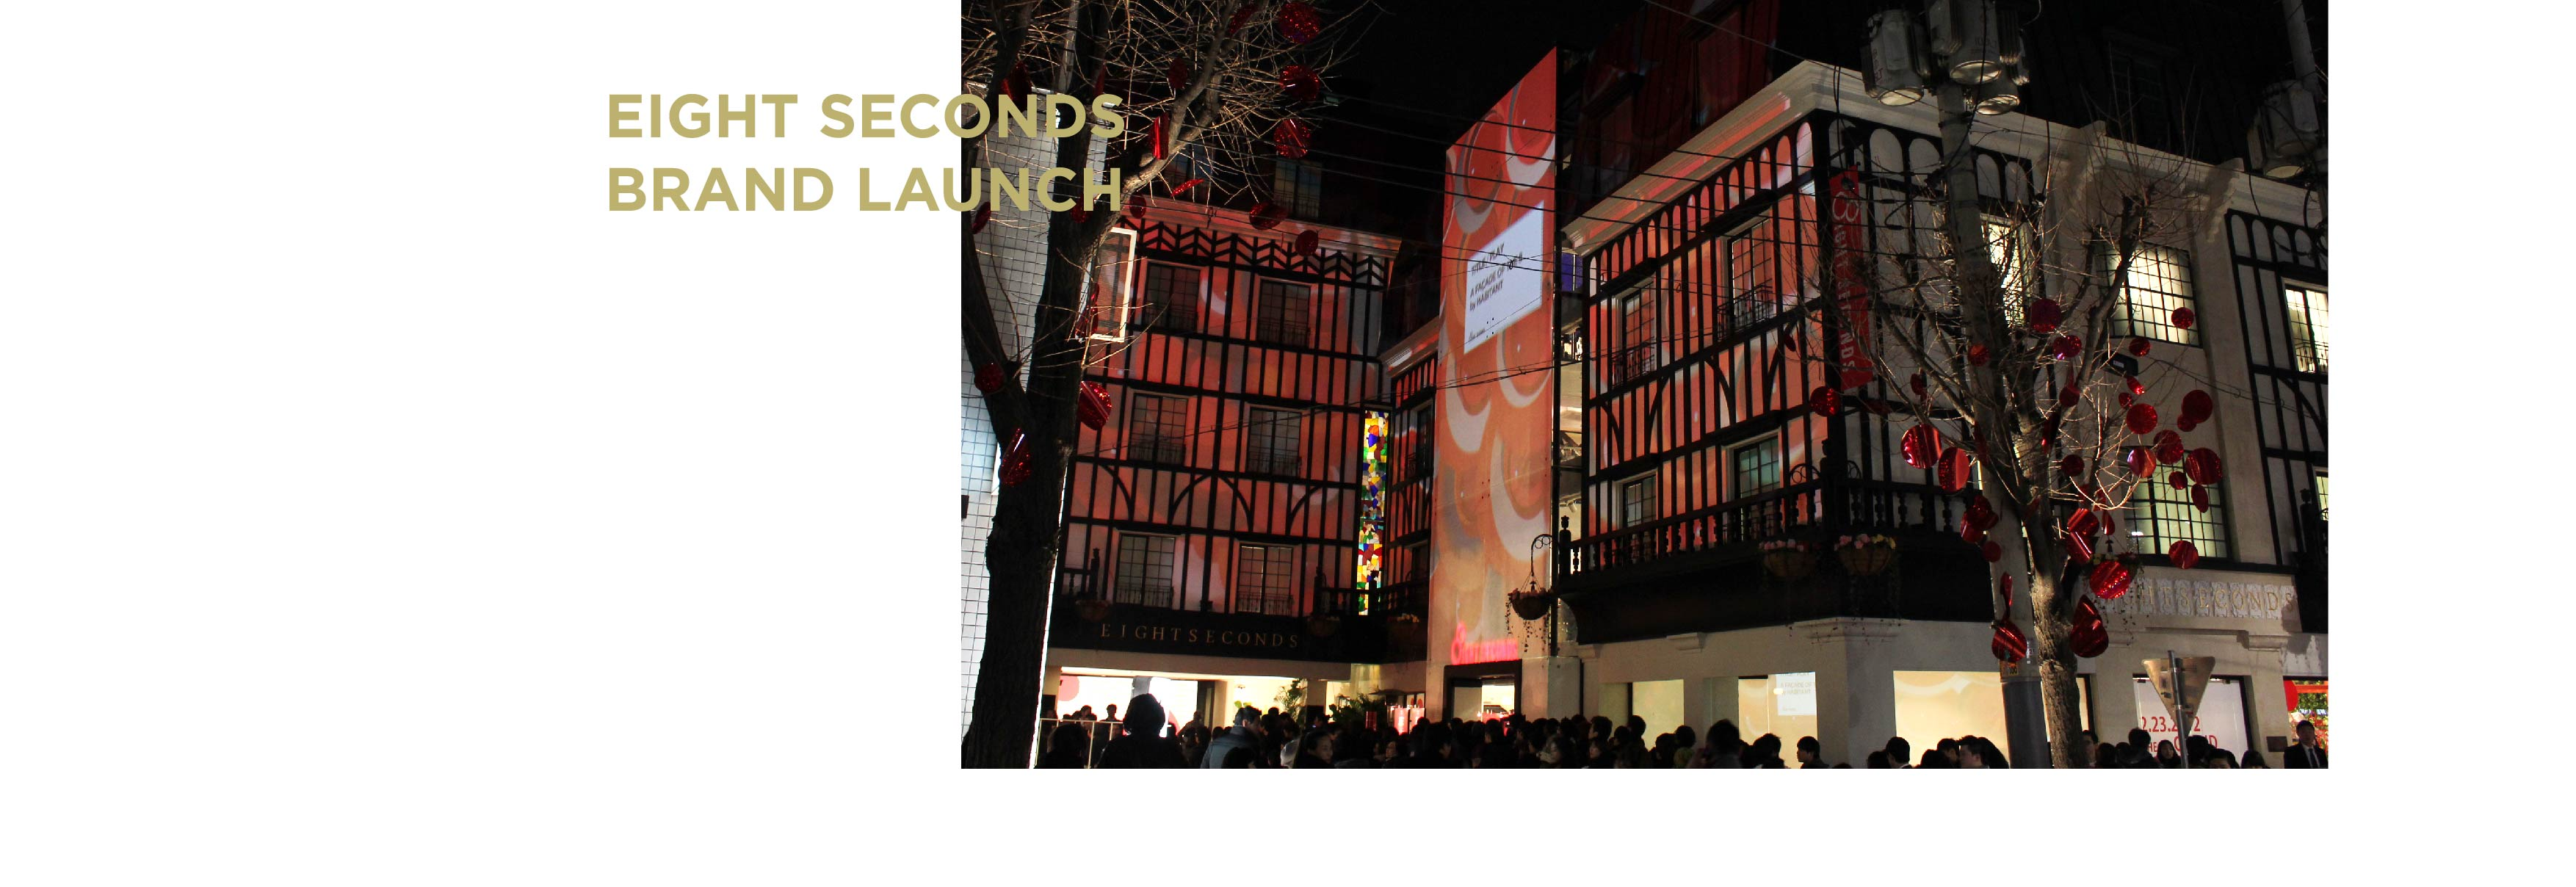 EIGHT SECONDS BRAND LAUNCHING